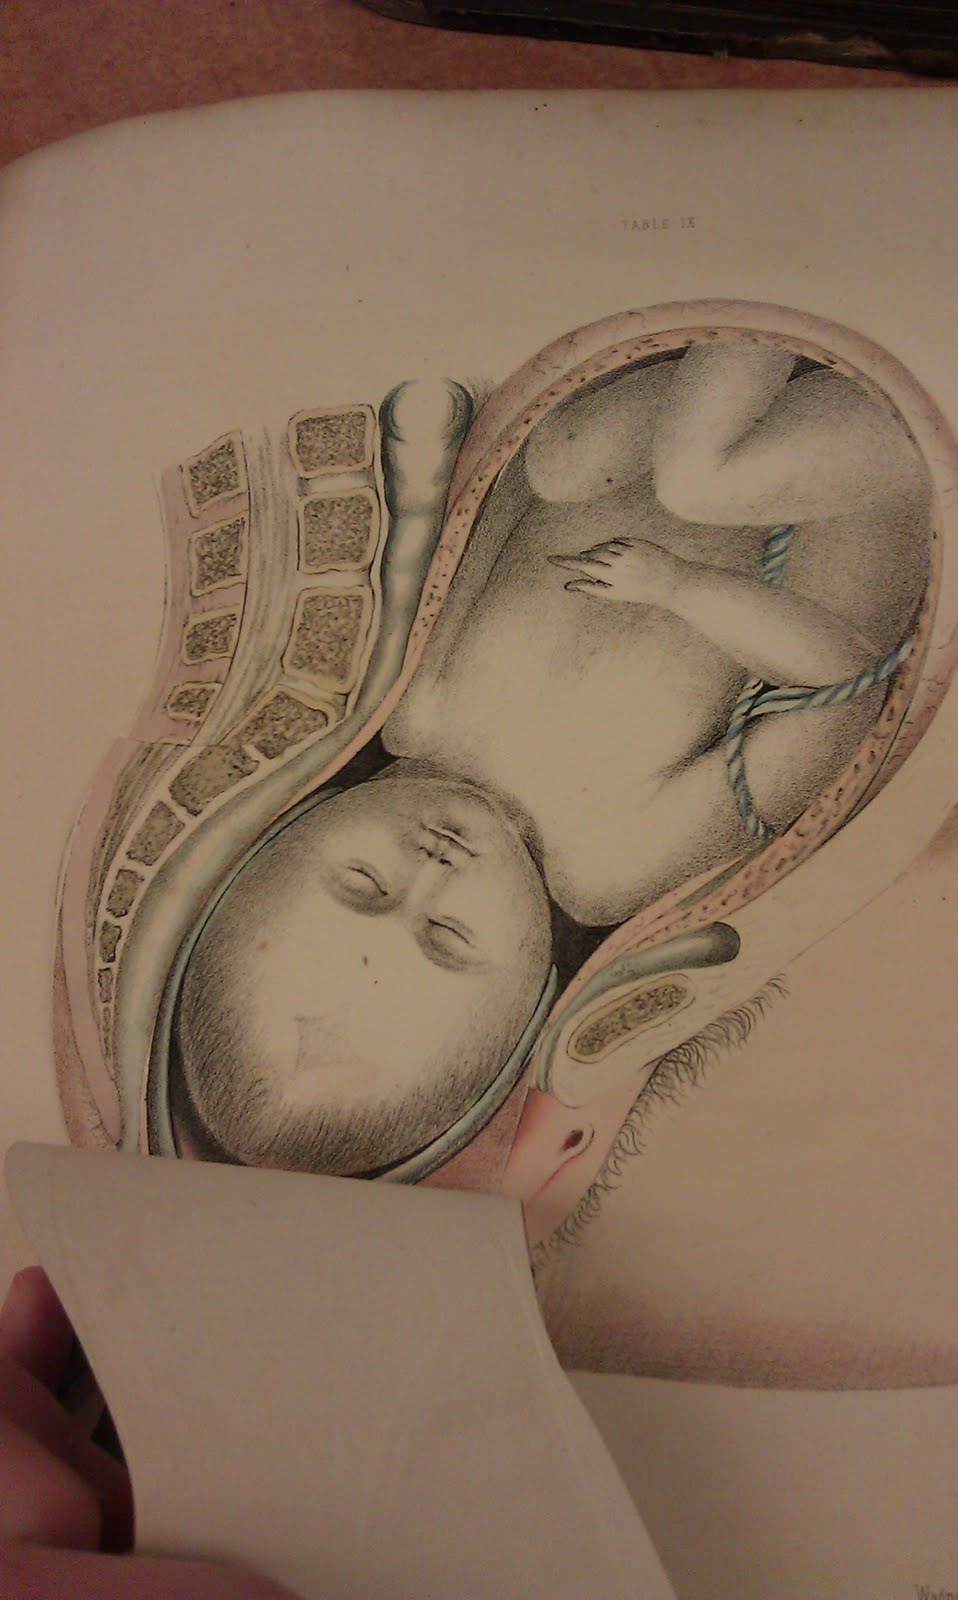 http://ohsu-hca.blogspot.com/2011/04/g-spratts-obstetric-tables-1850.html#uds-search-results